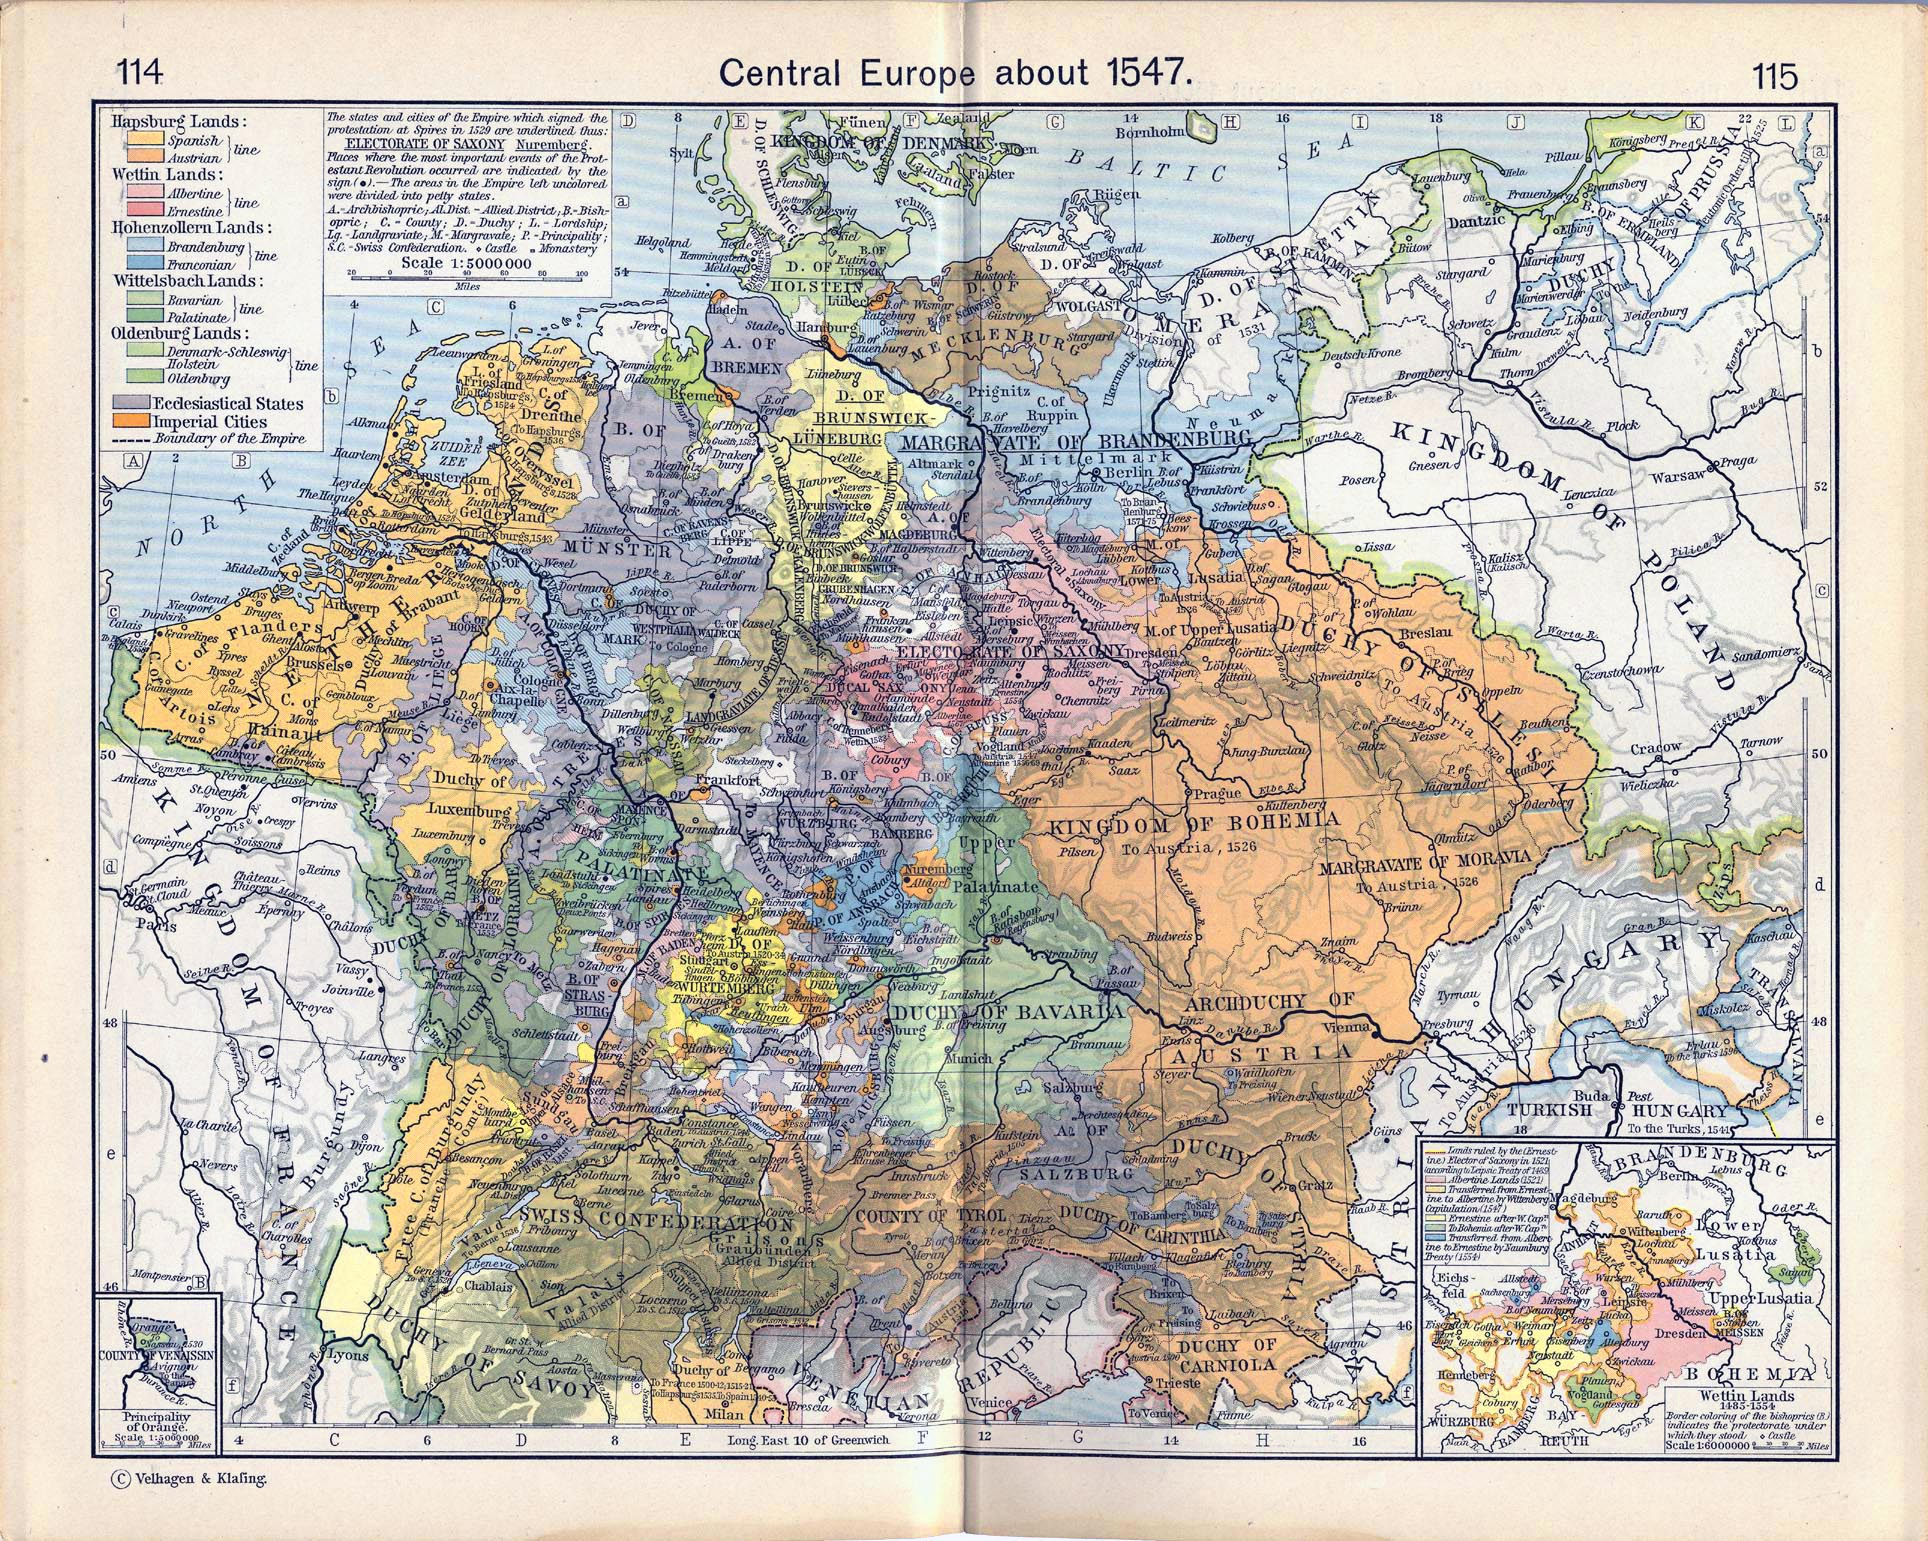 Map of Central Europe about 1547